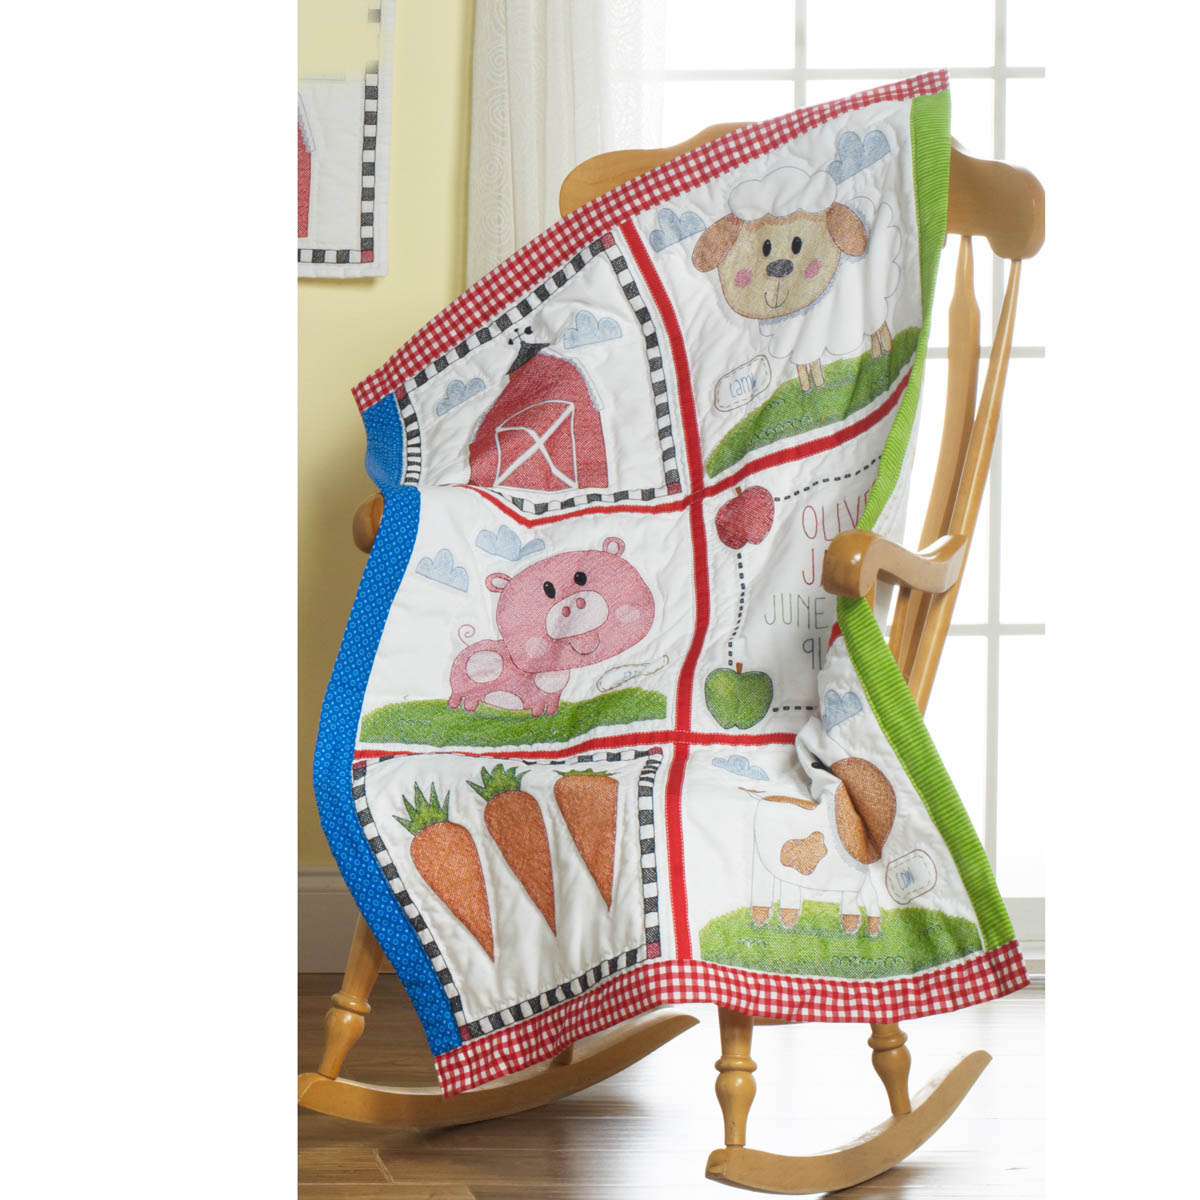 Bucilla ® Baby - Stamped Cross Stitch - Crib Ensembles - Farm Animals - Quilt Blocks